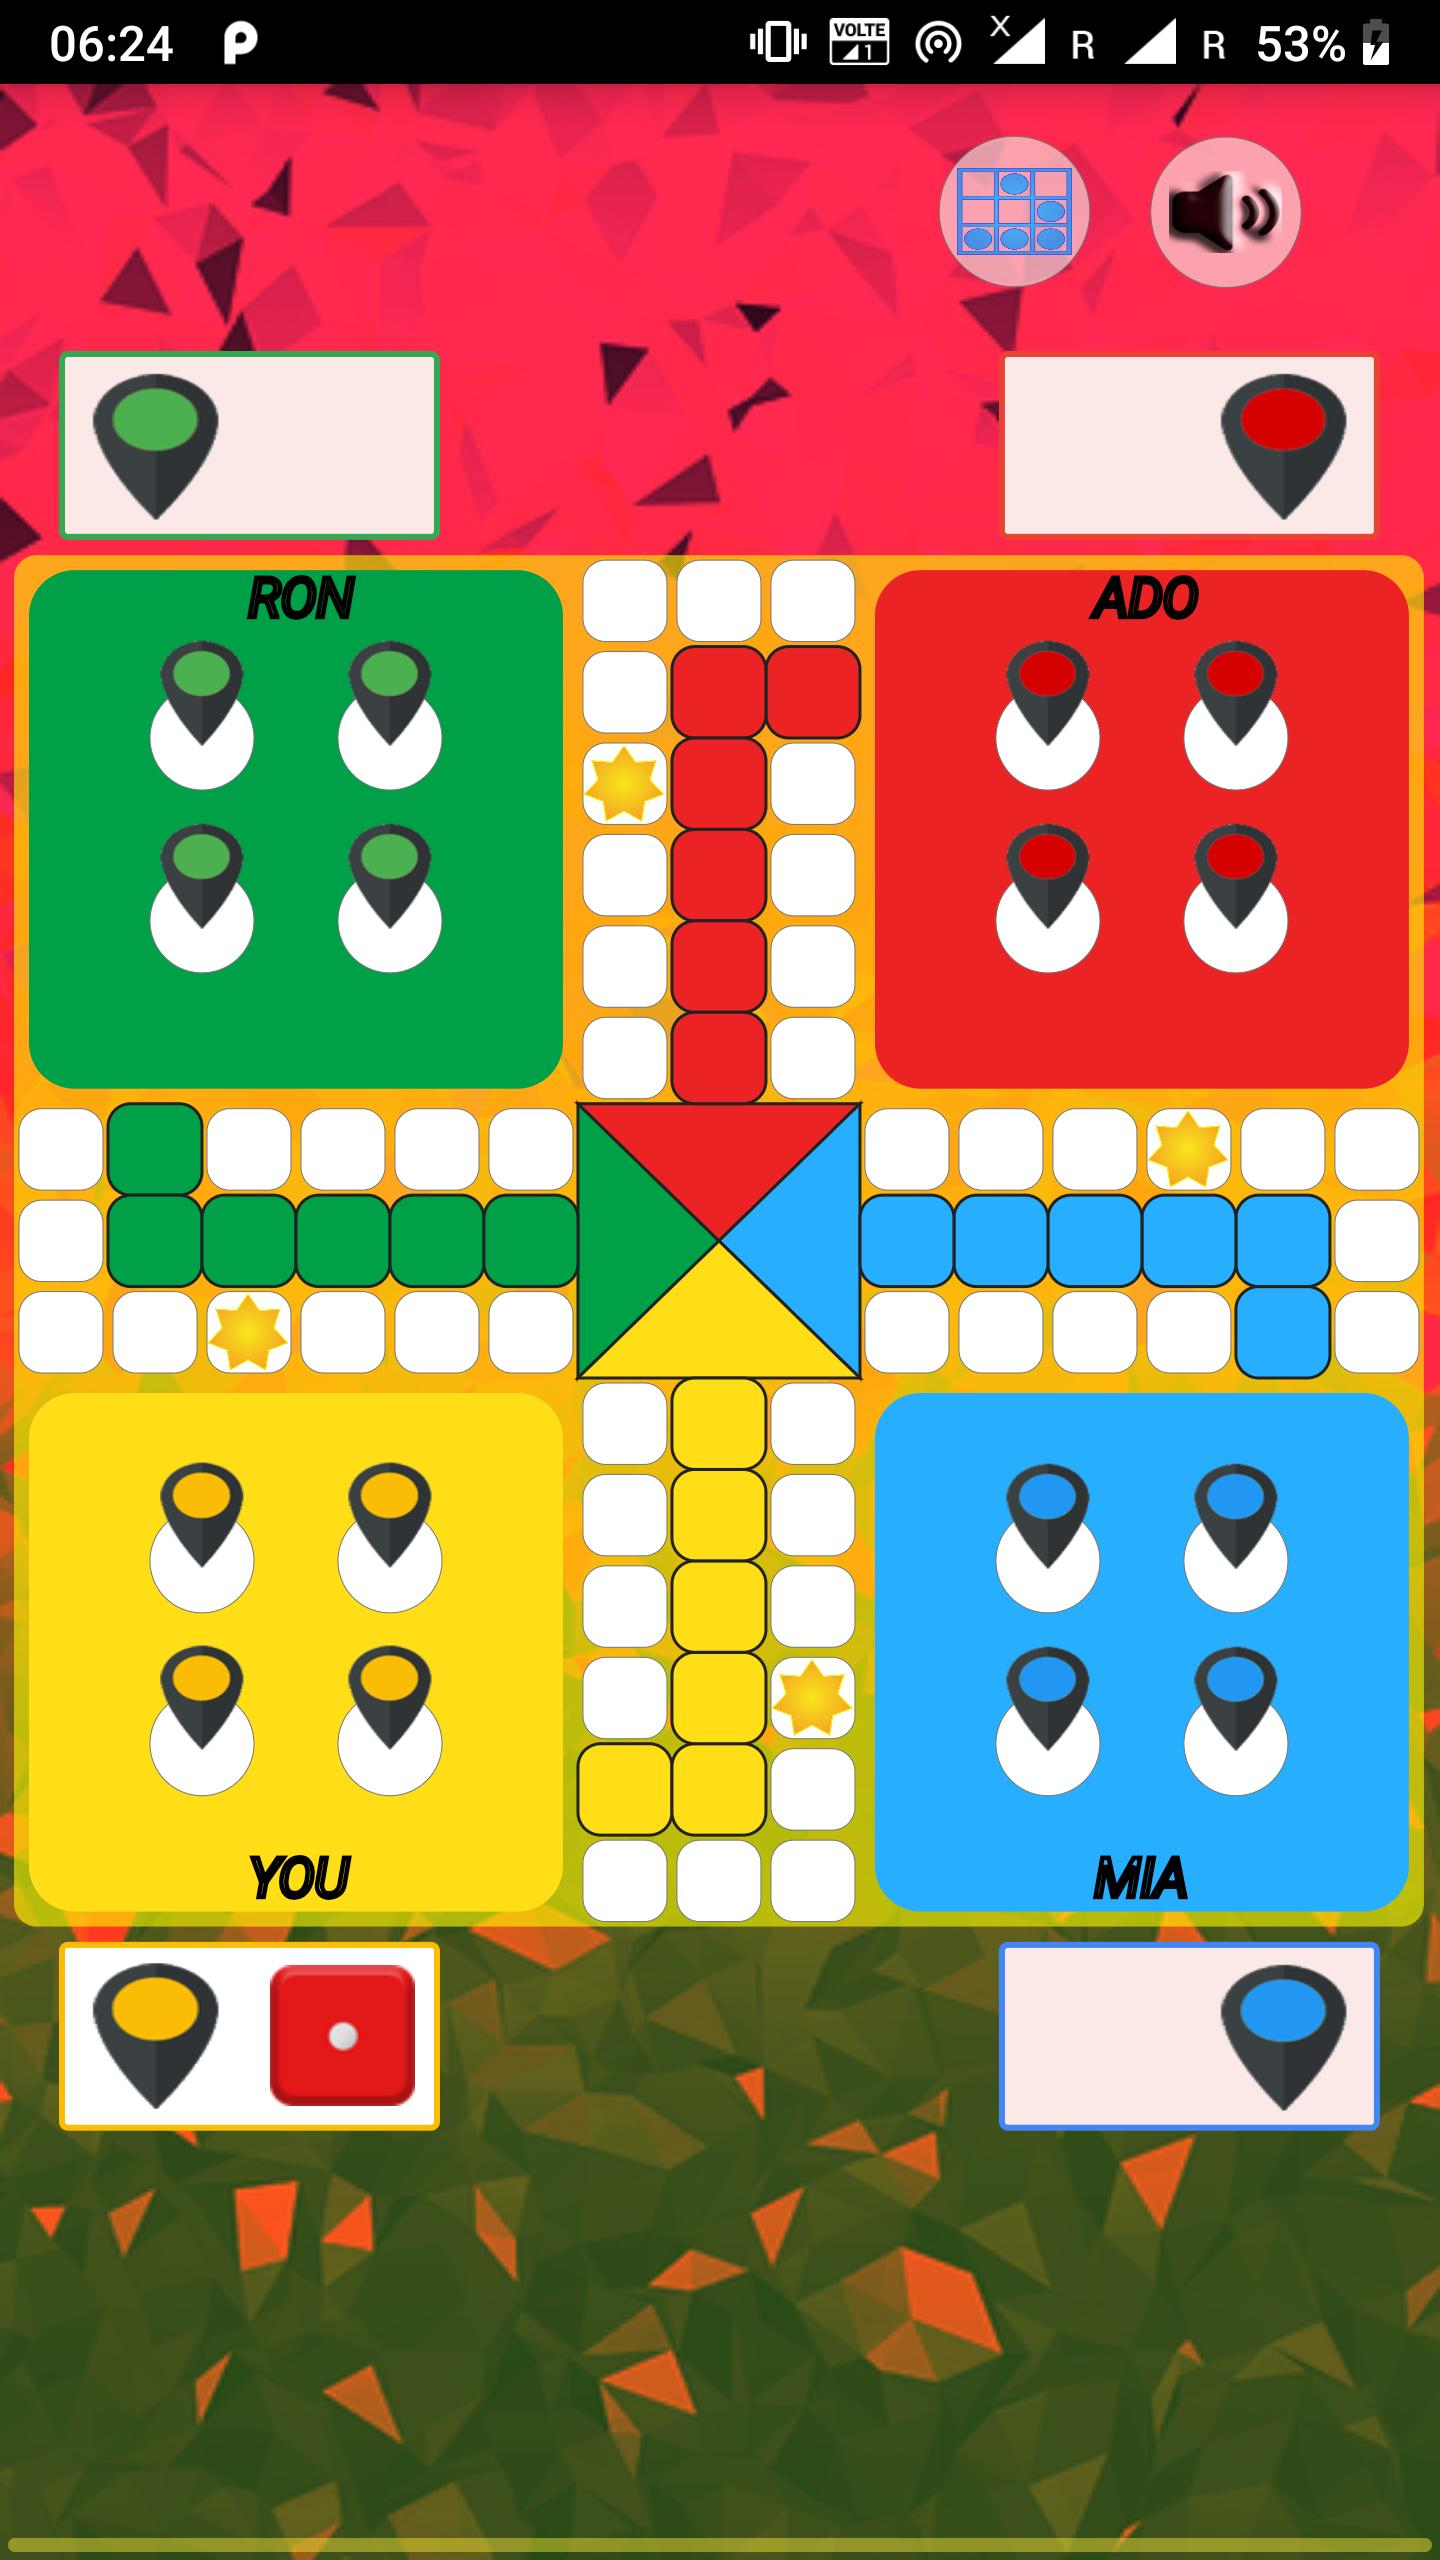 Ludo 2020 For Android - Apk Download tout France 4 Ludo